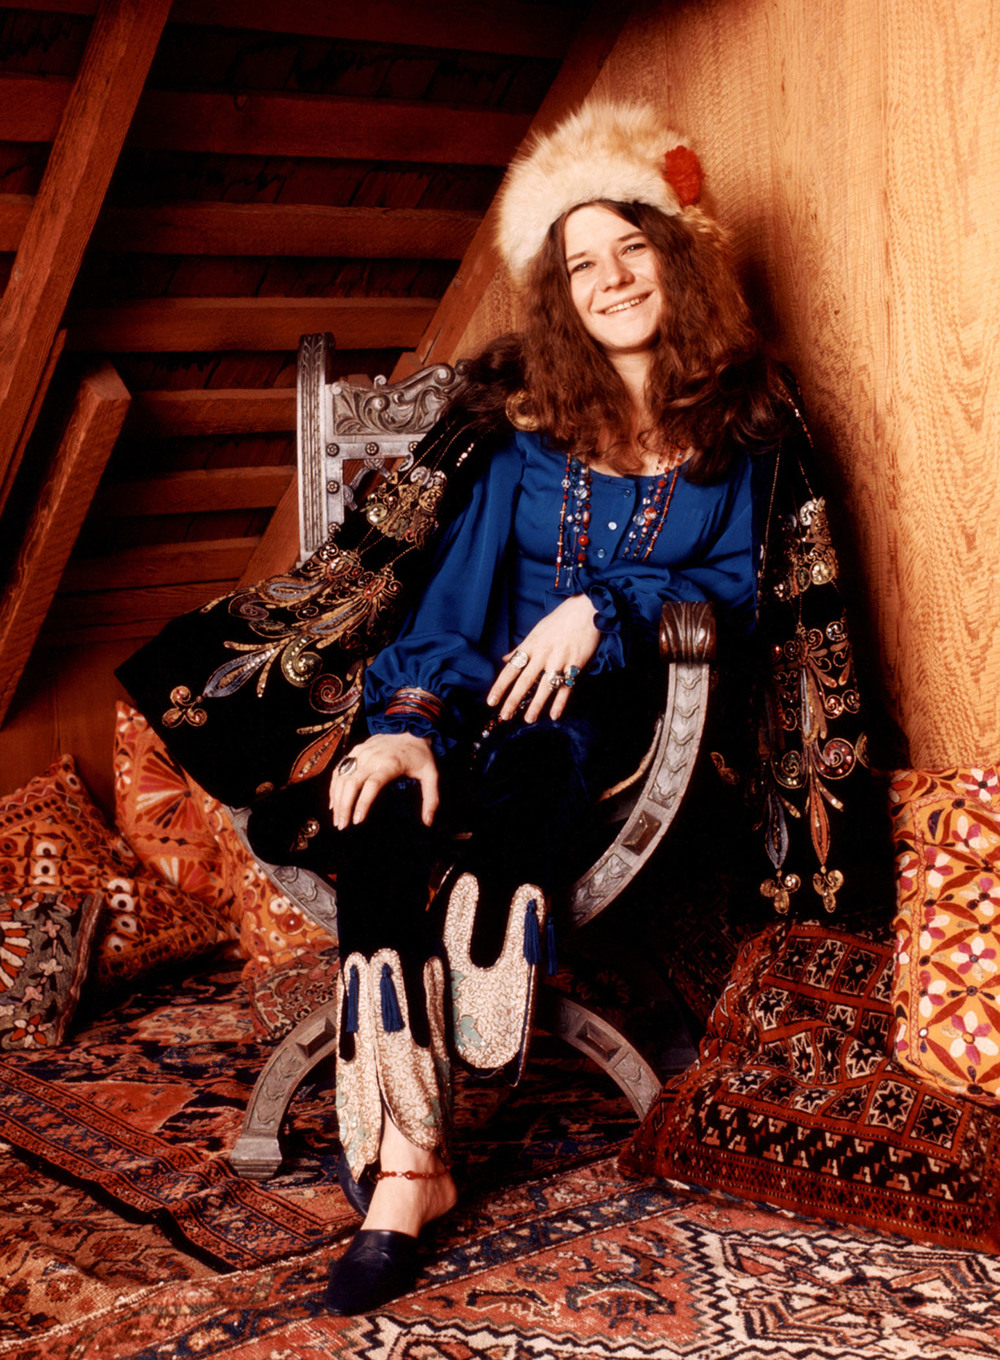 Janis Joplin, San Francisco 1968 Photo ©Baron Wolman / Iconic Images